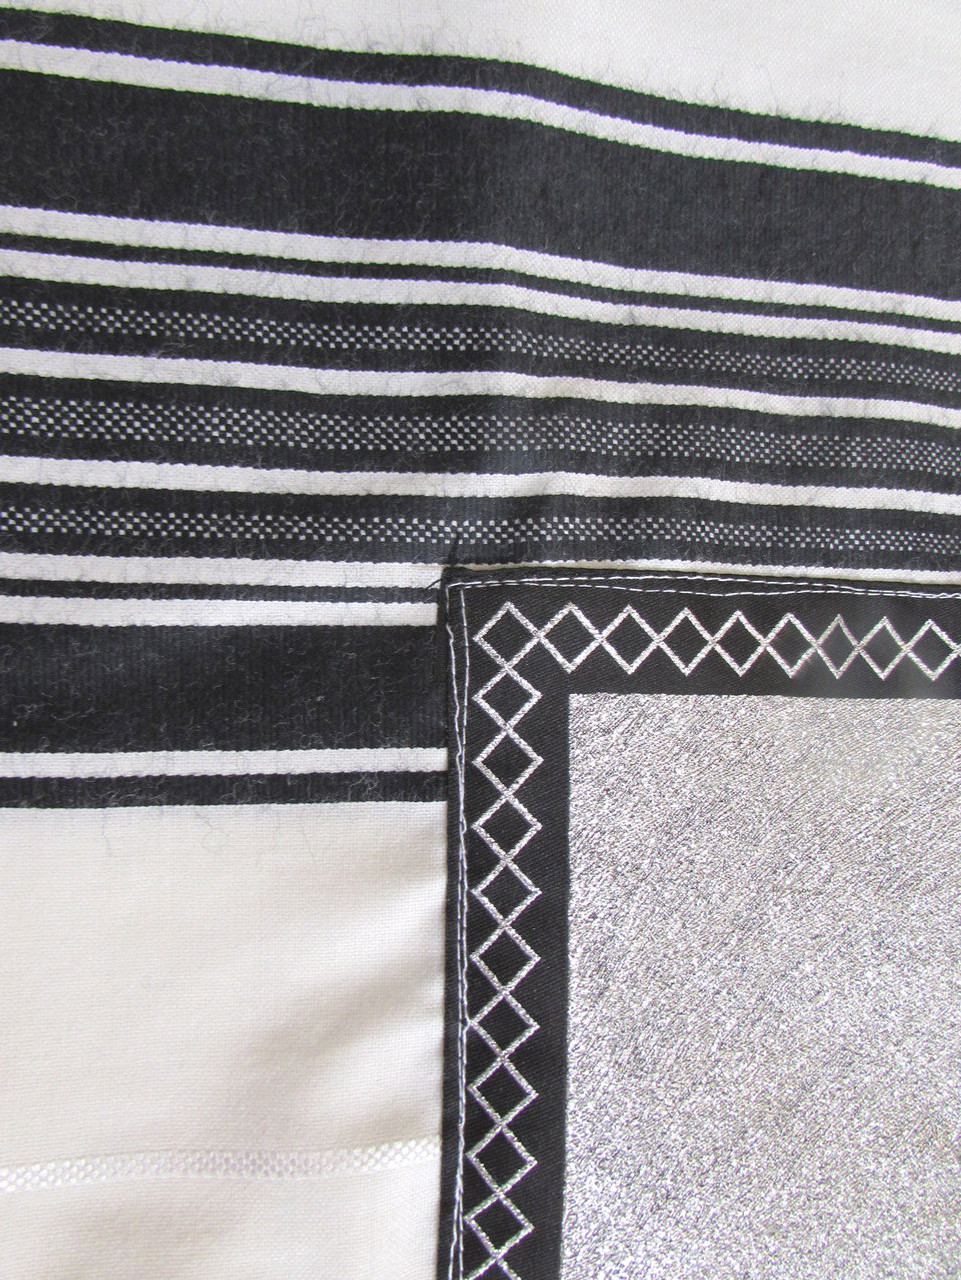 Yemenite Tallit with Black-Silver